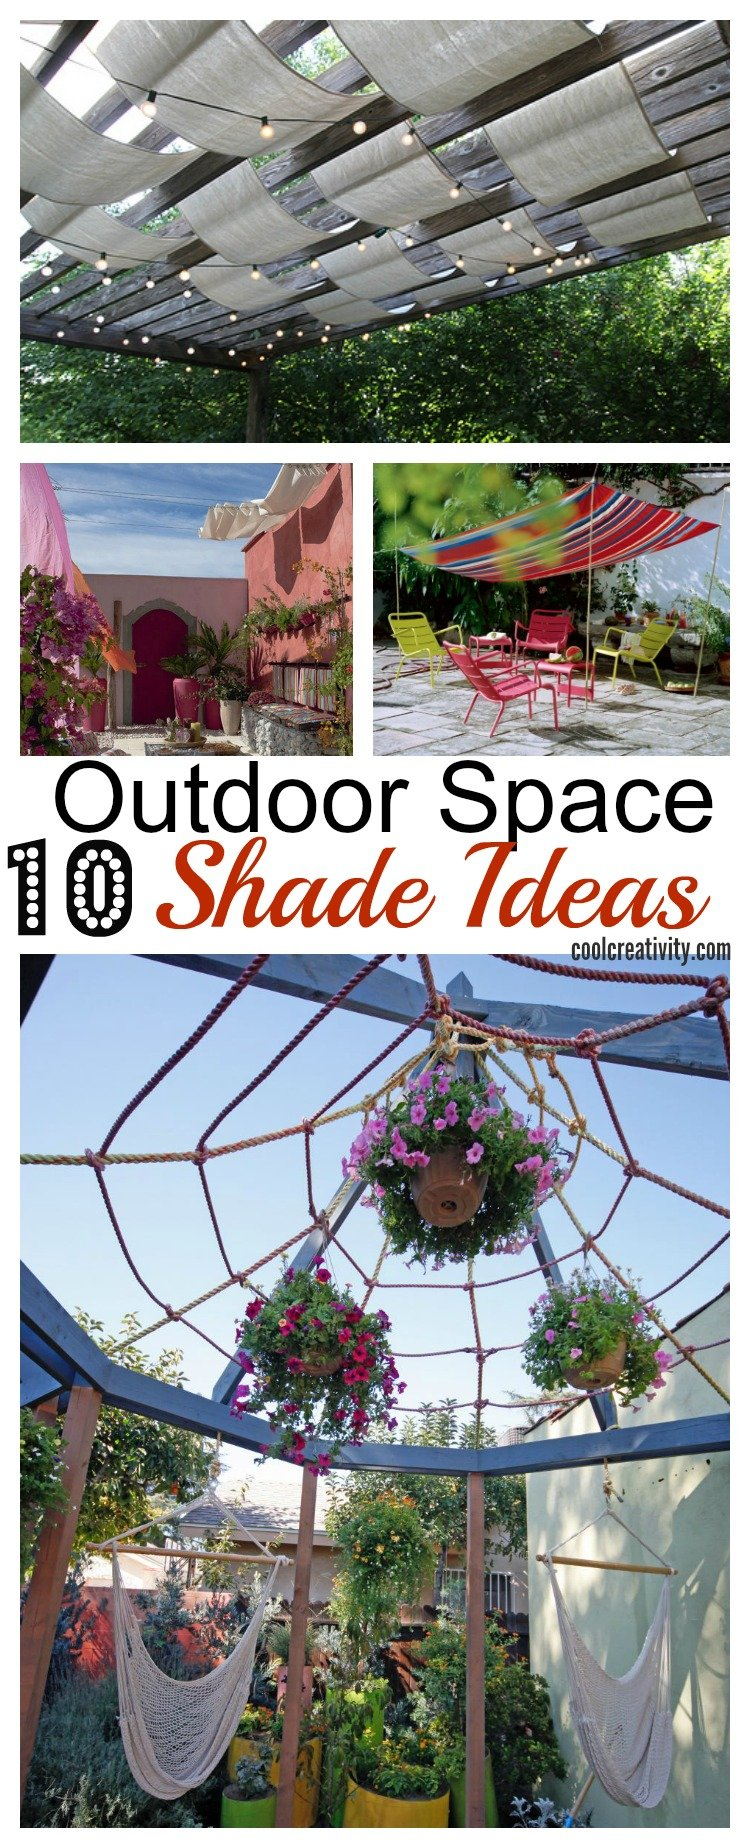 10 Ideas to Bring Shade to Your Outdoor Space p